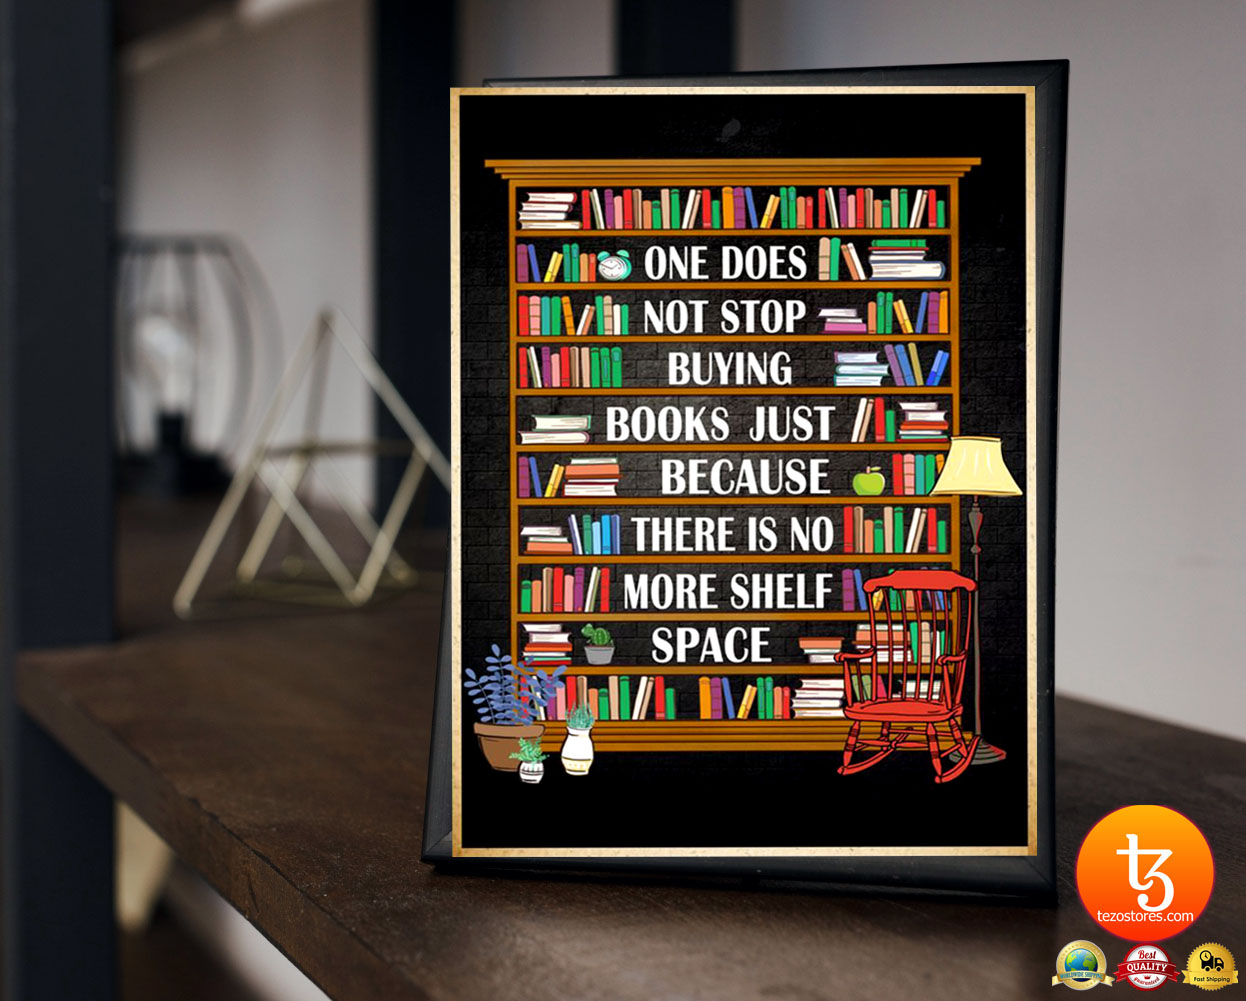 One does not stop buying books just because there is no more shelf space poster 4